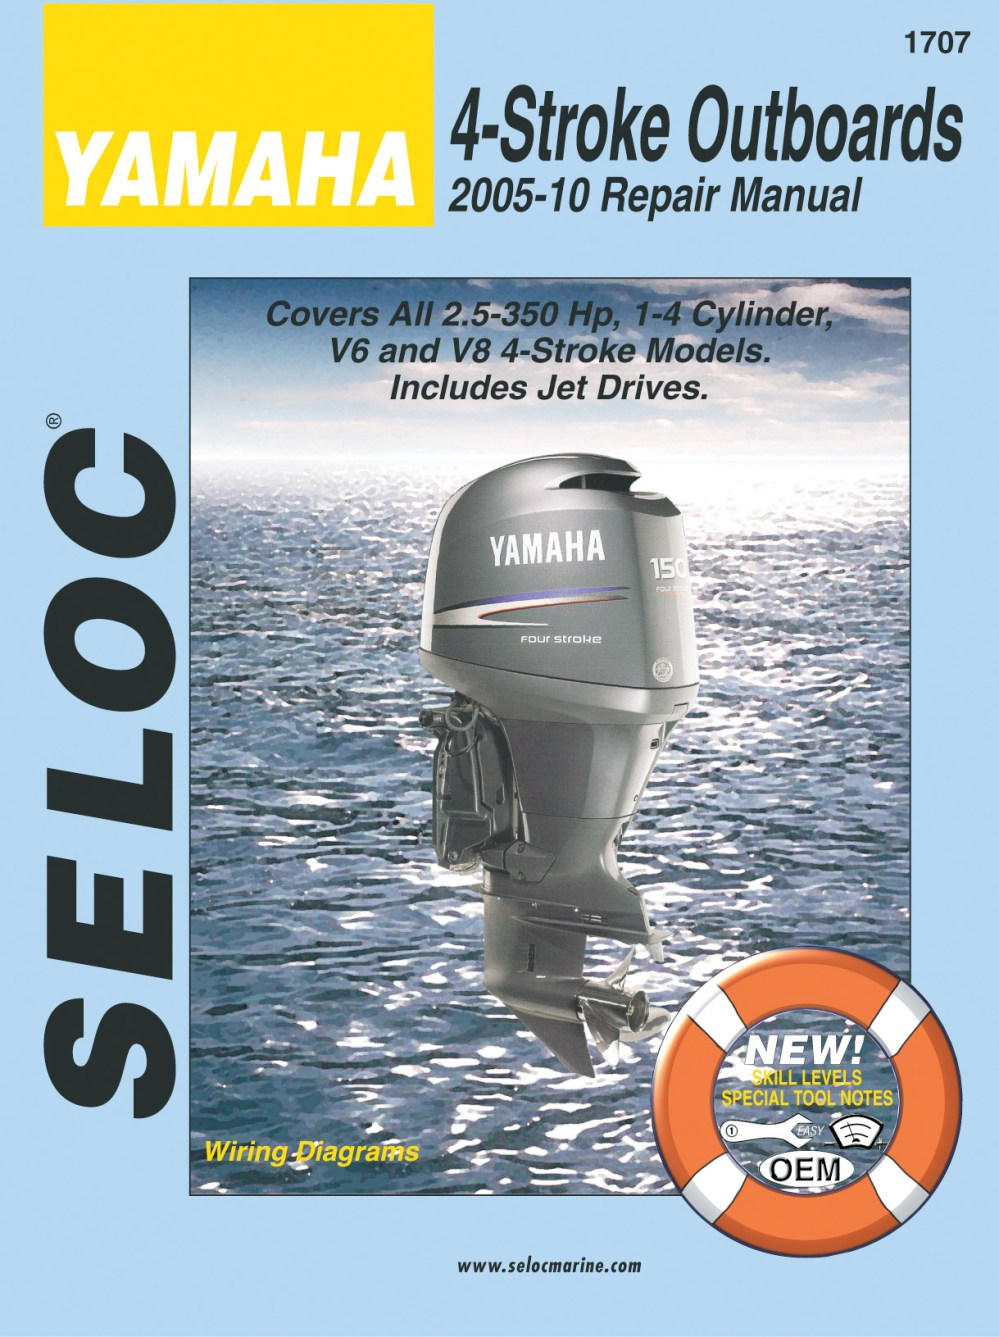 medium resolution of yamaha 4 stroke outboards 2005 2010 repair service manual